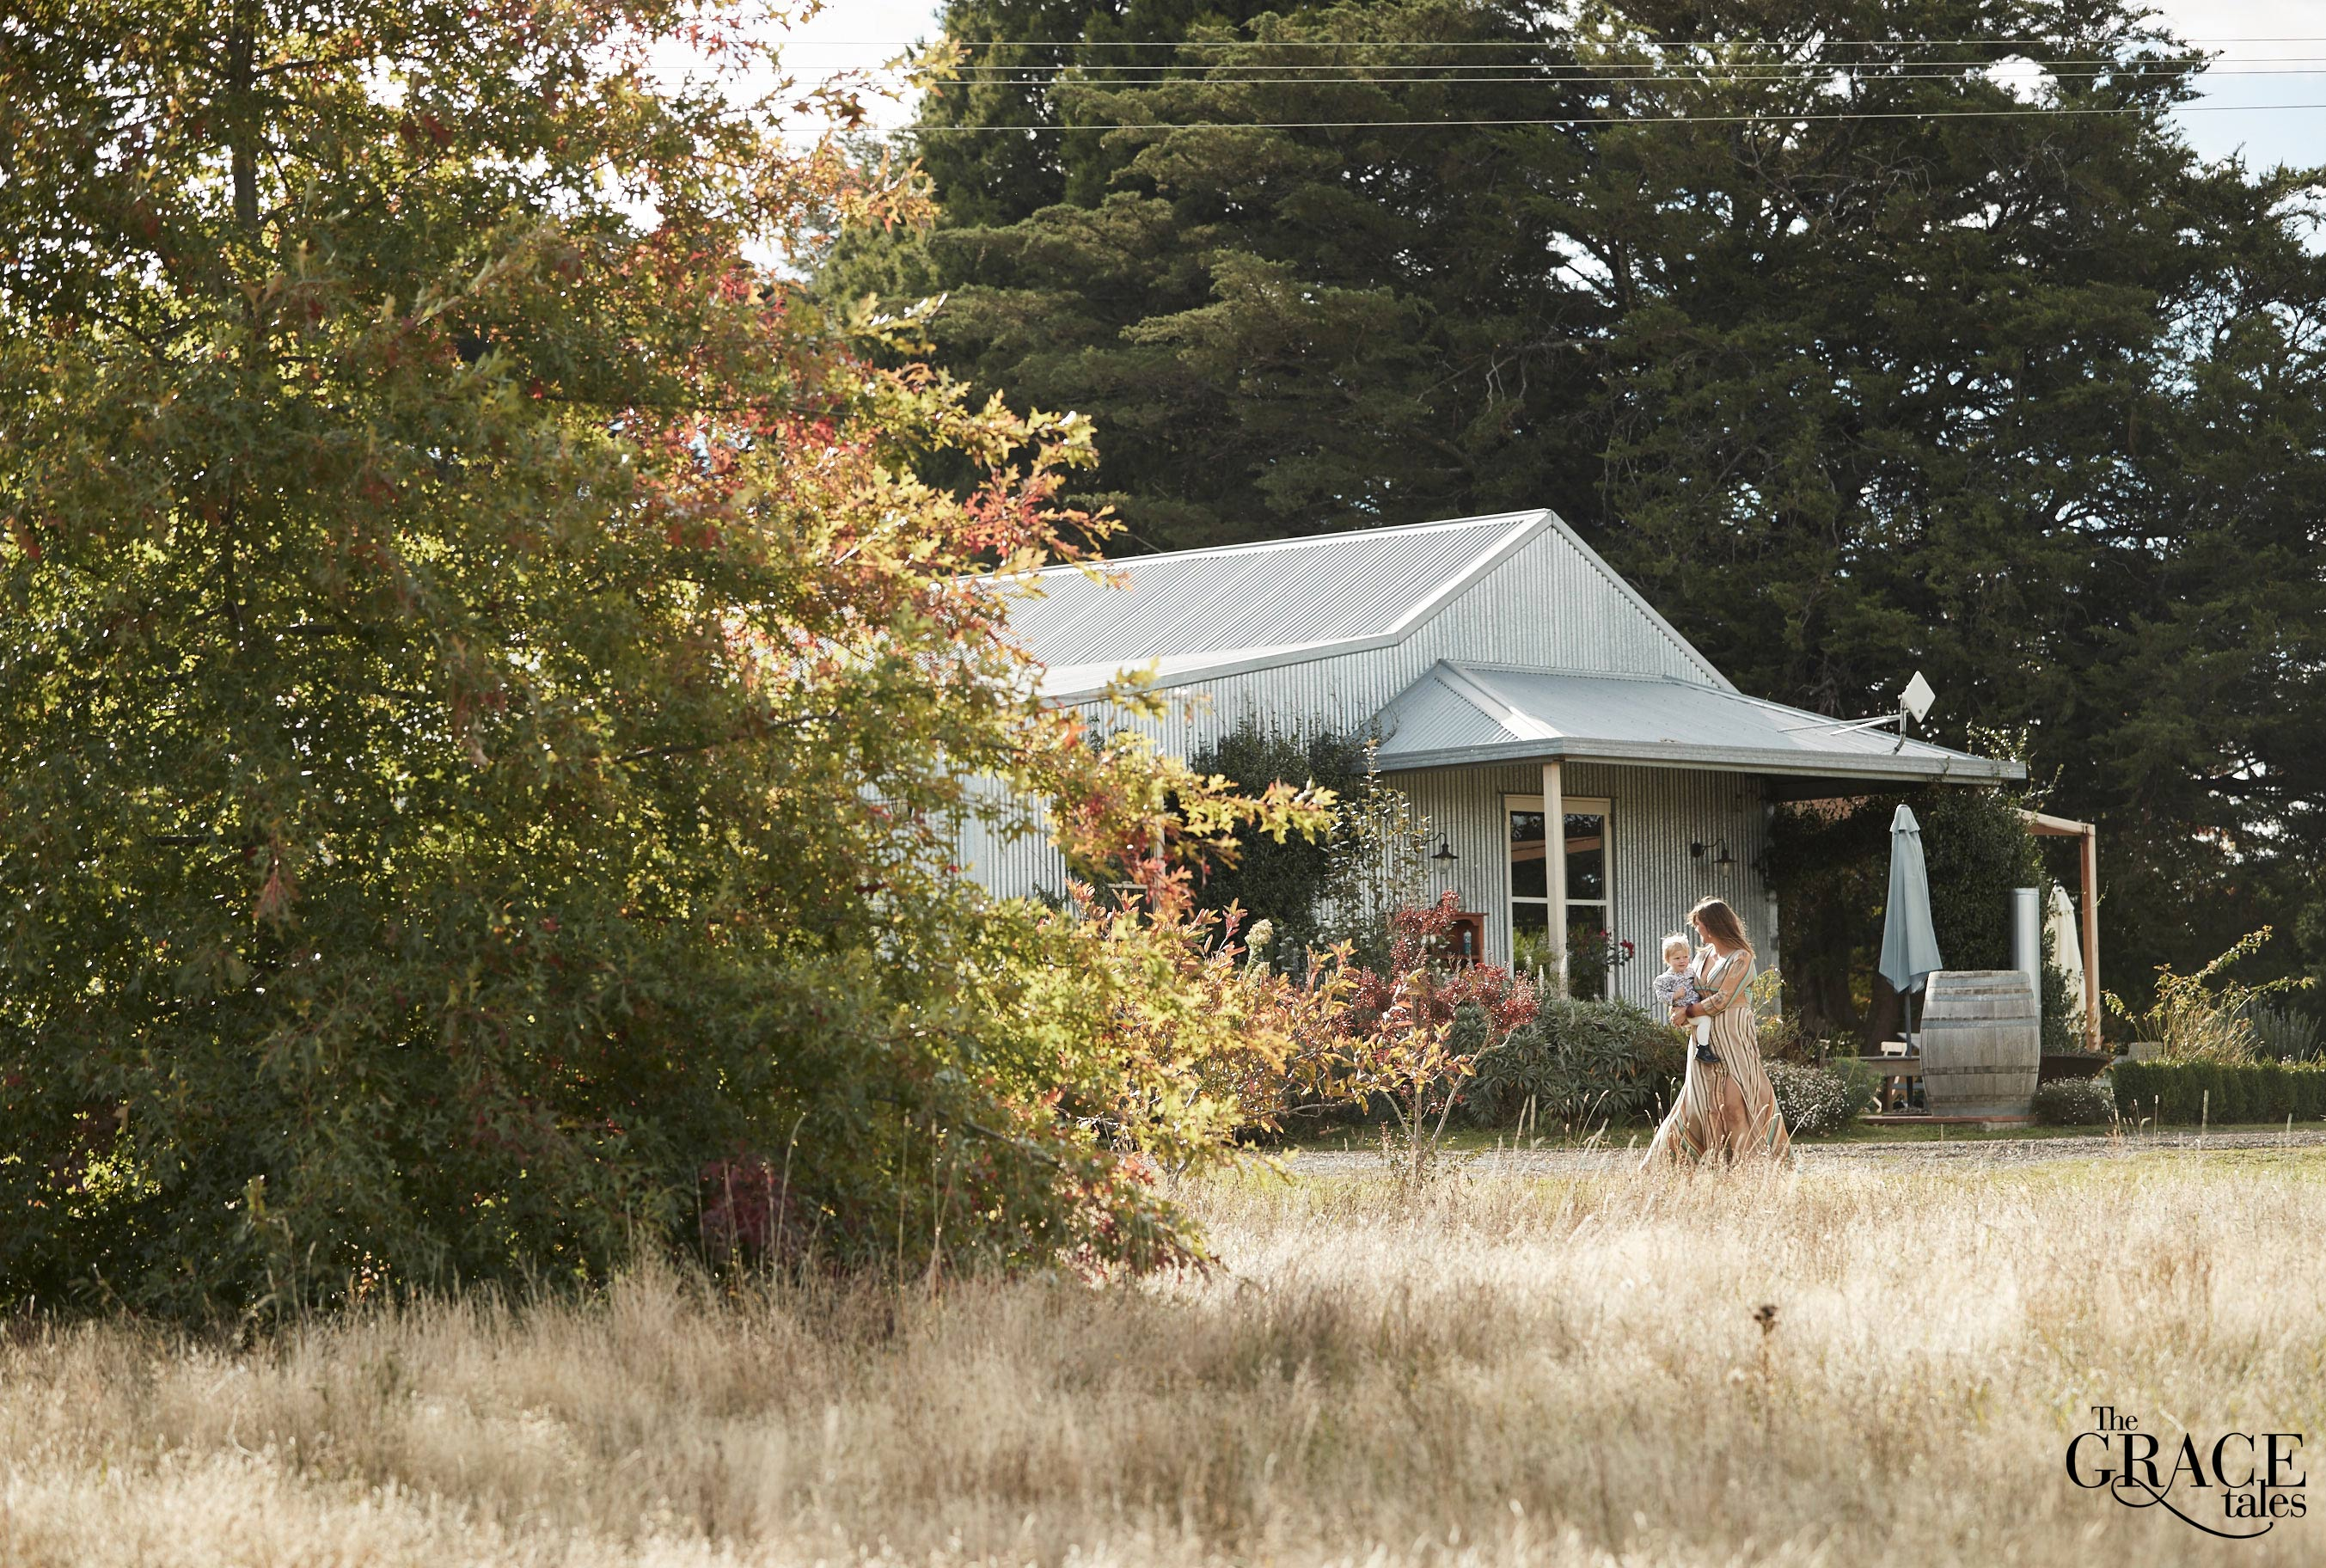 Willa Arantz On Idyllic Country Life & Overcoming The Grief Of Losing A Child